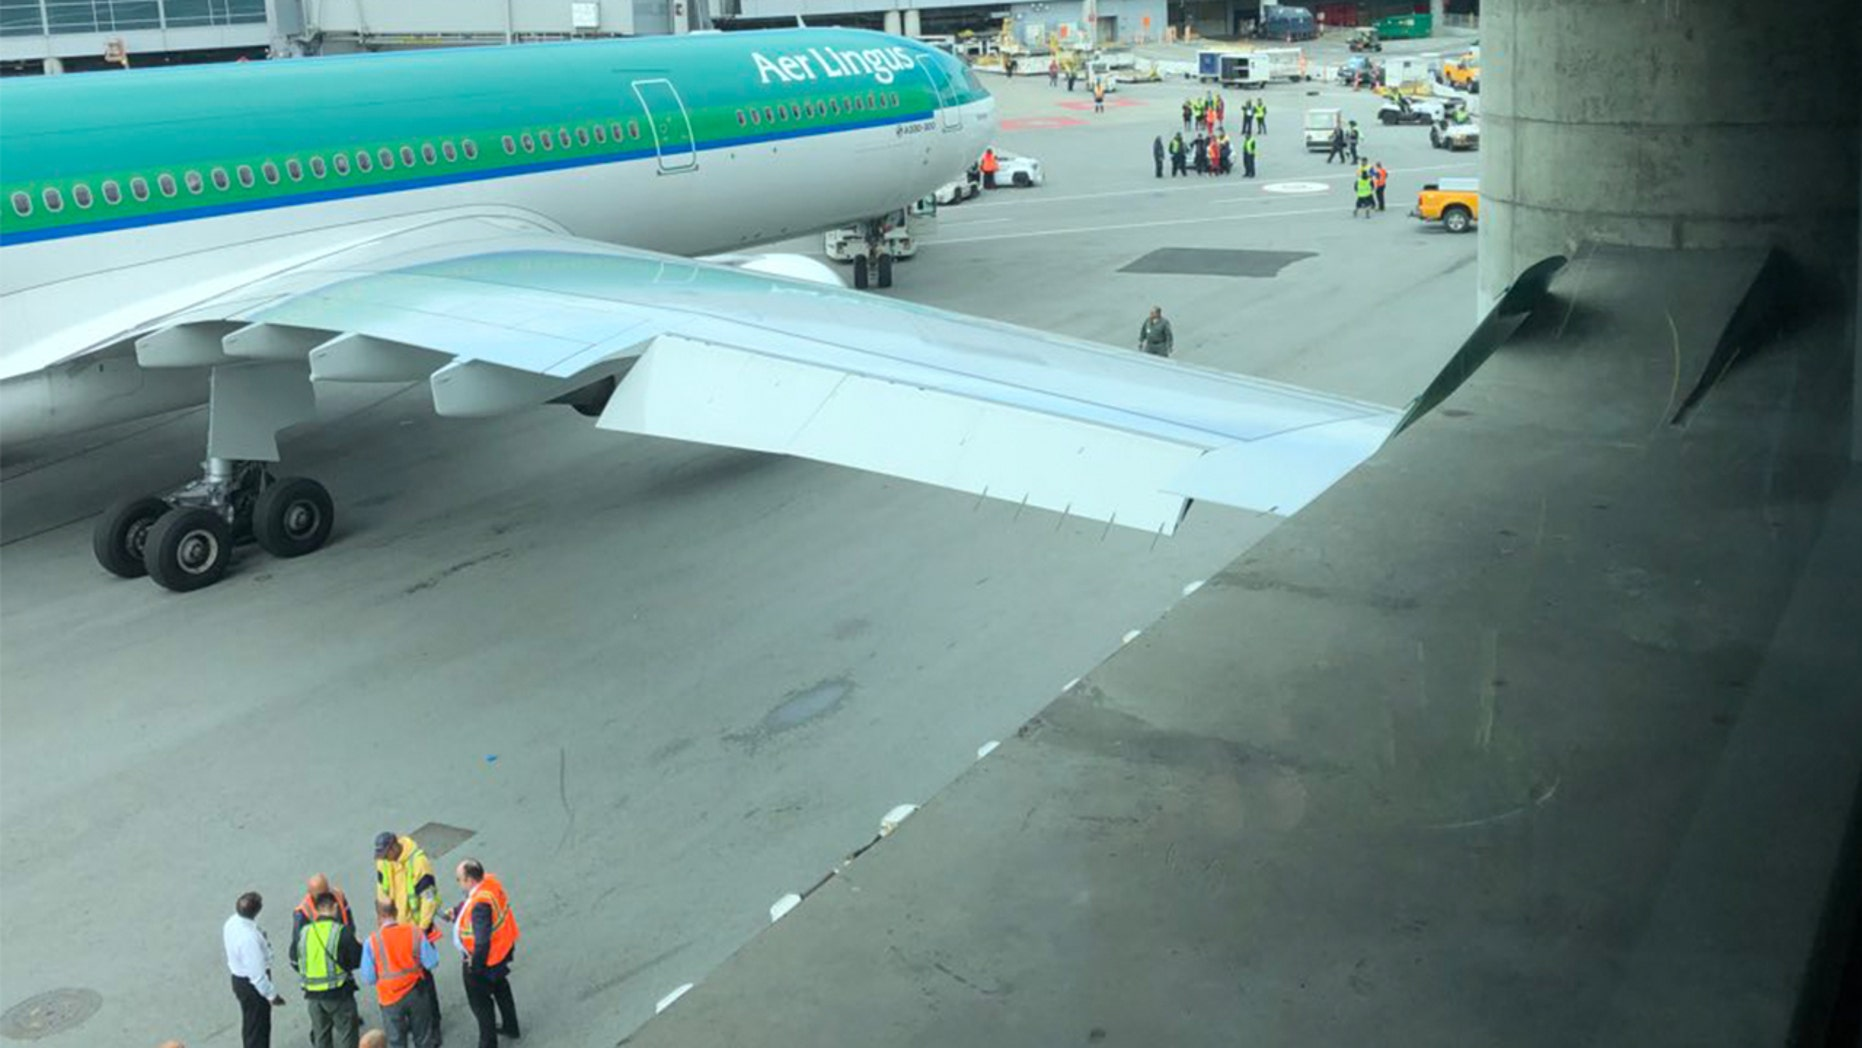 An airport worker at SFO towed an Aer Lingus plane into a concrete pole, resulting in damage to the wing.